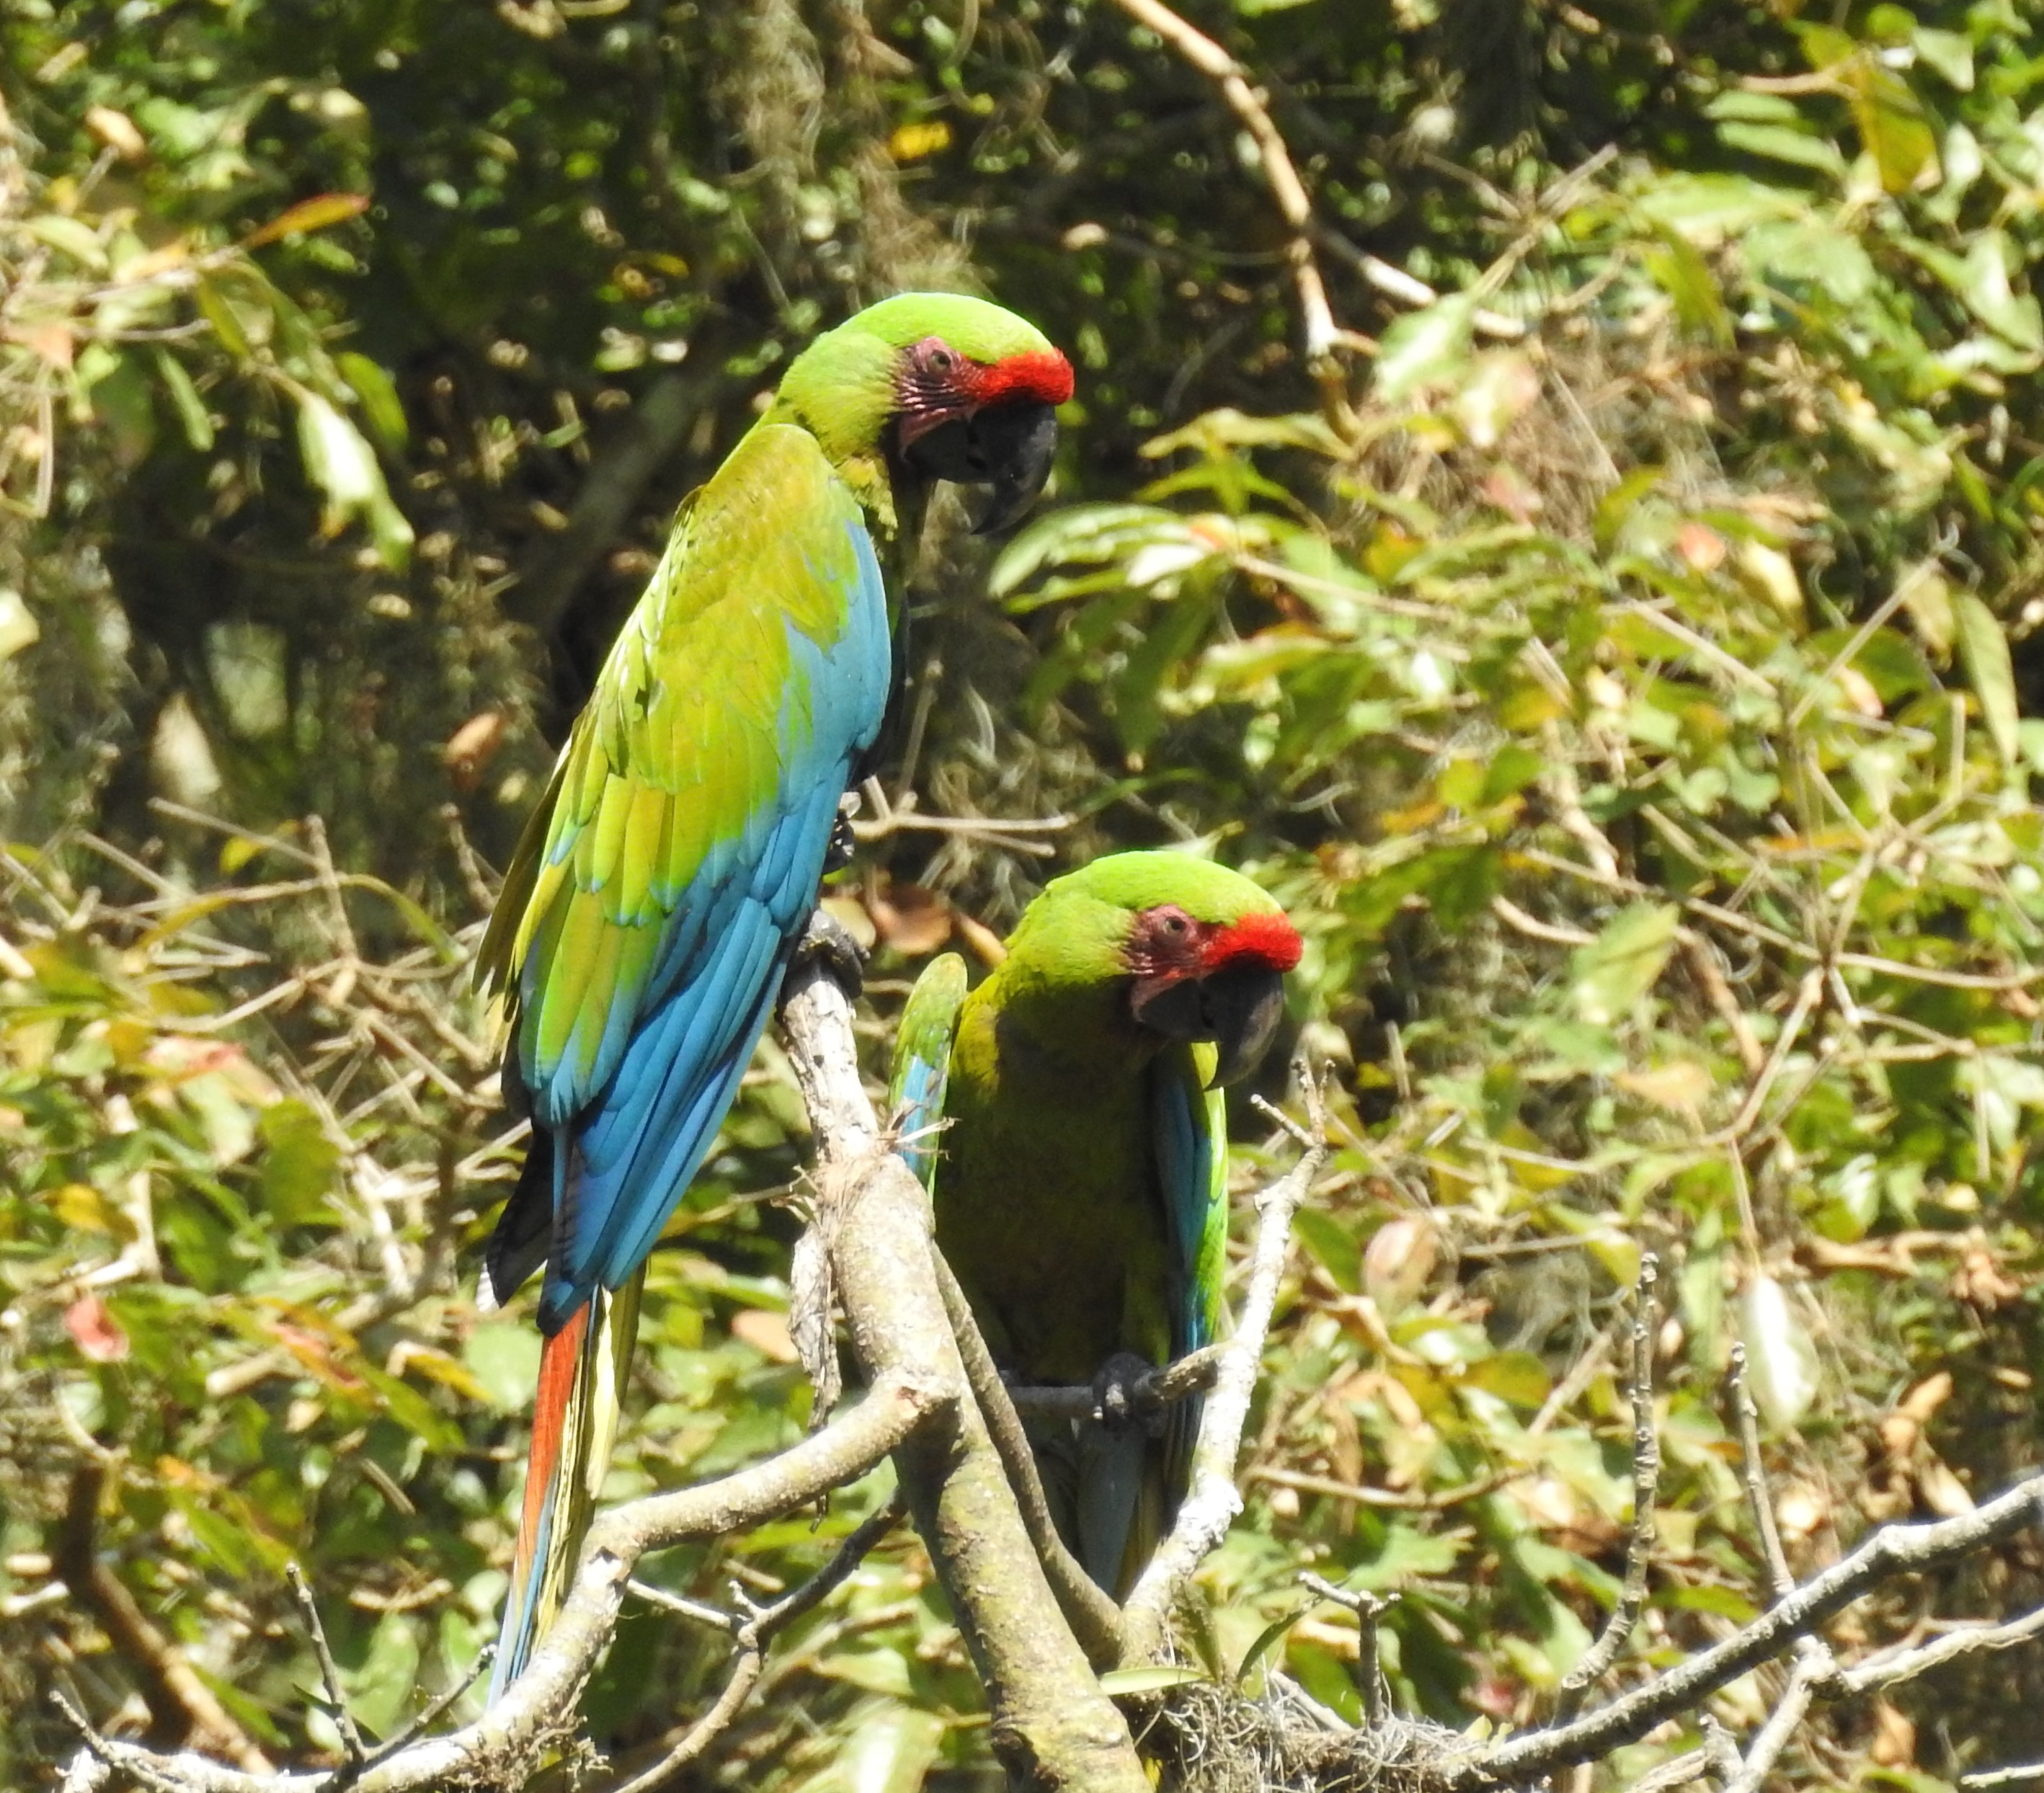 Great news for the Great Green Macaw!